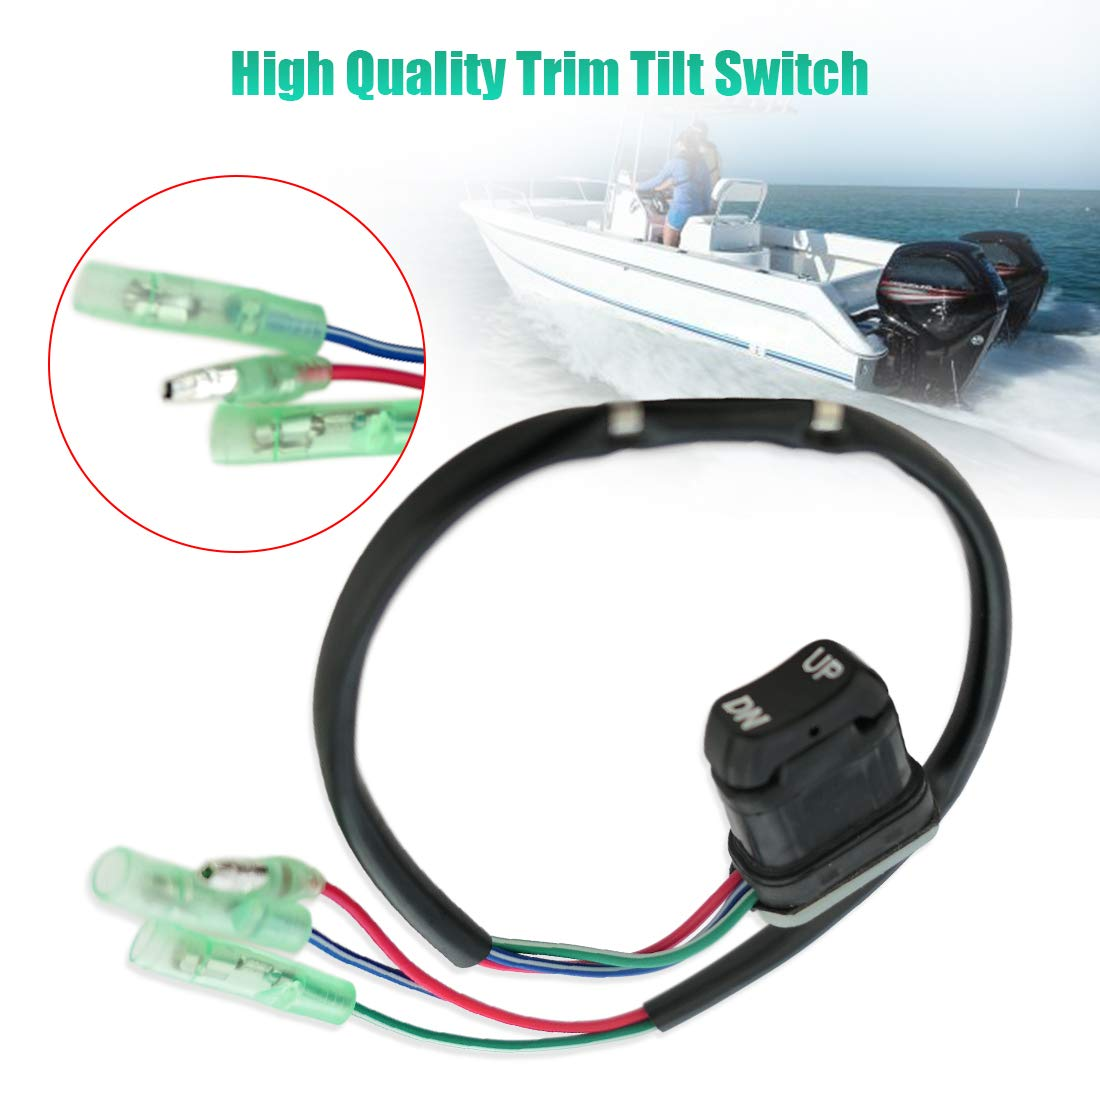 Boat Assembly Replacement OEM Number 87-18286A43 18286A43 1.31.20.7 inch Cable Length 17.7 inch Metal and Plastic Black Power Trim Tilt Switch Fits for Mercury Mariner Outboard Models Box